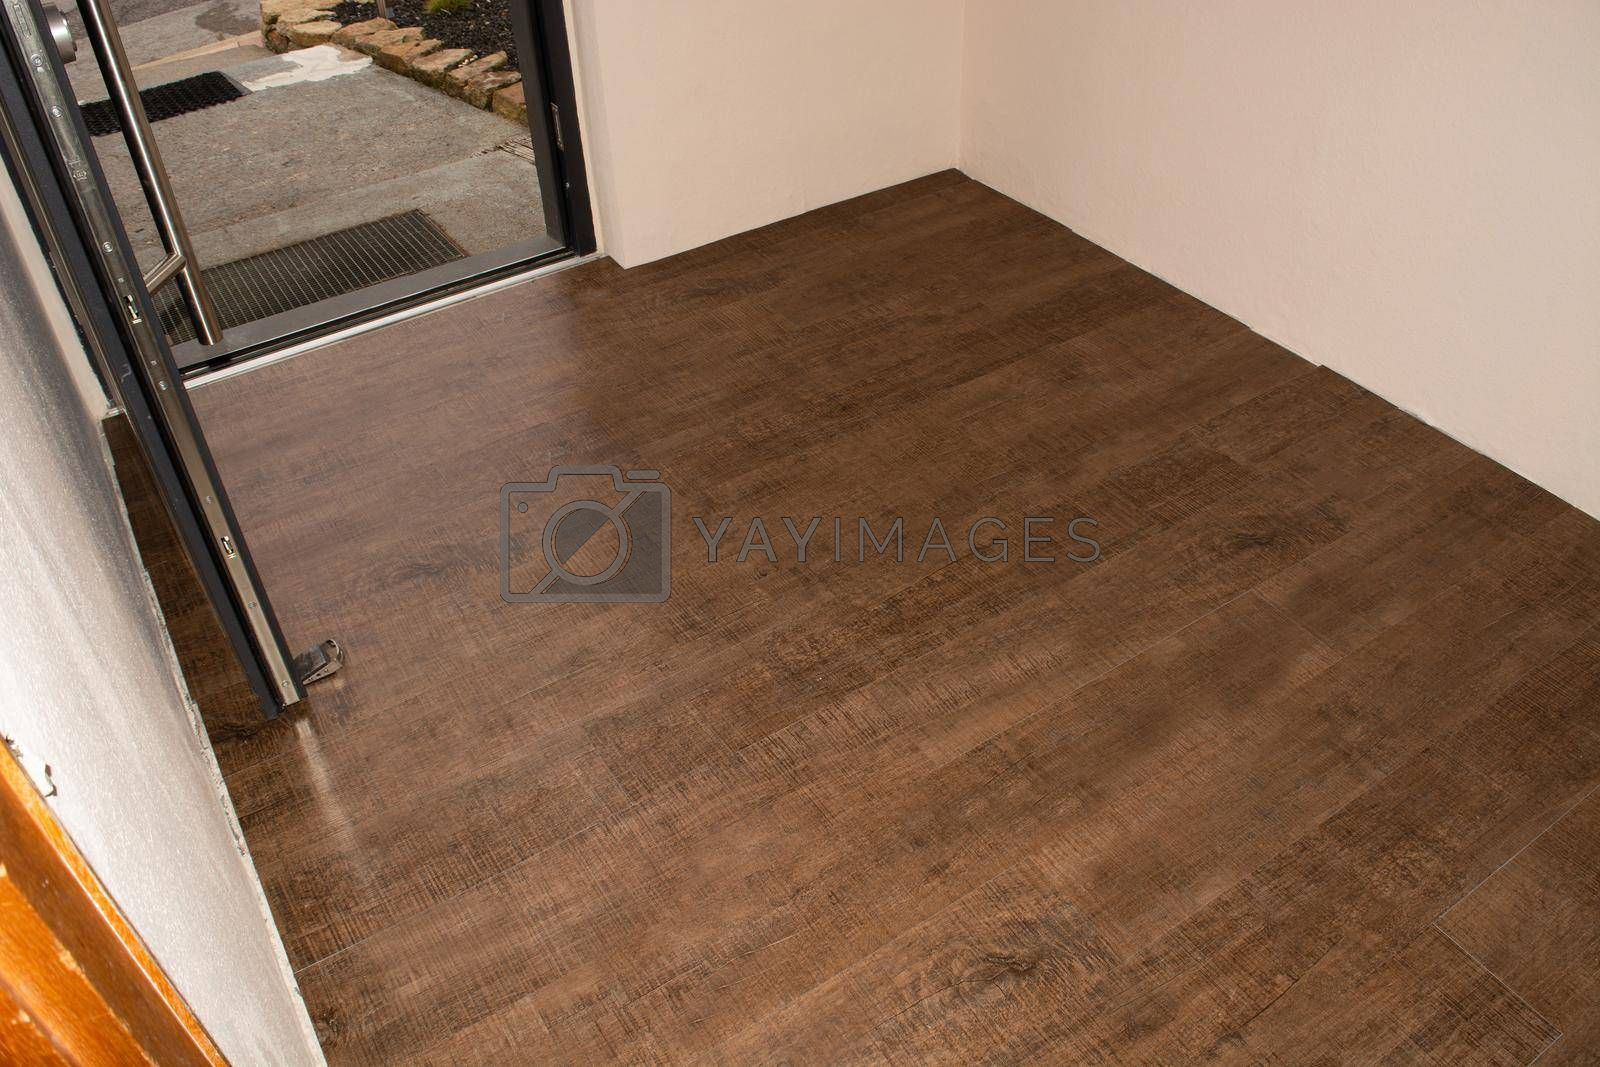 Royalty free image of Threaded panel of a laminate floor    by JFsPic